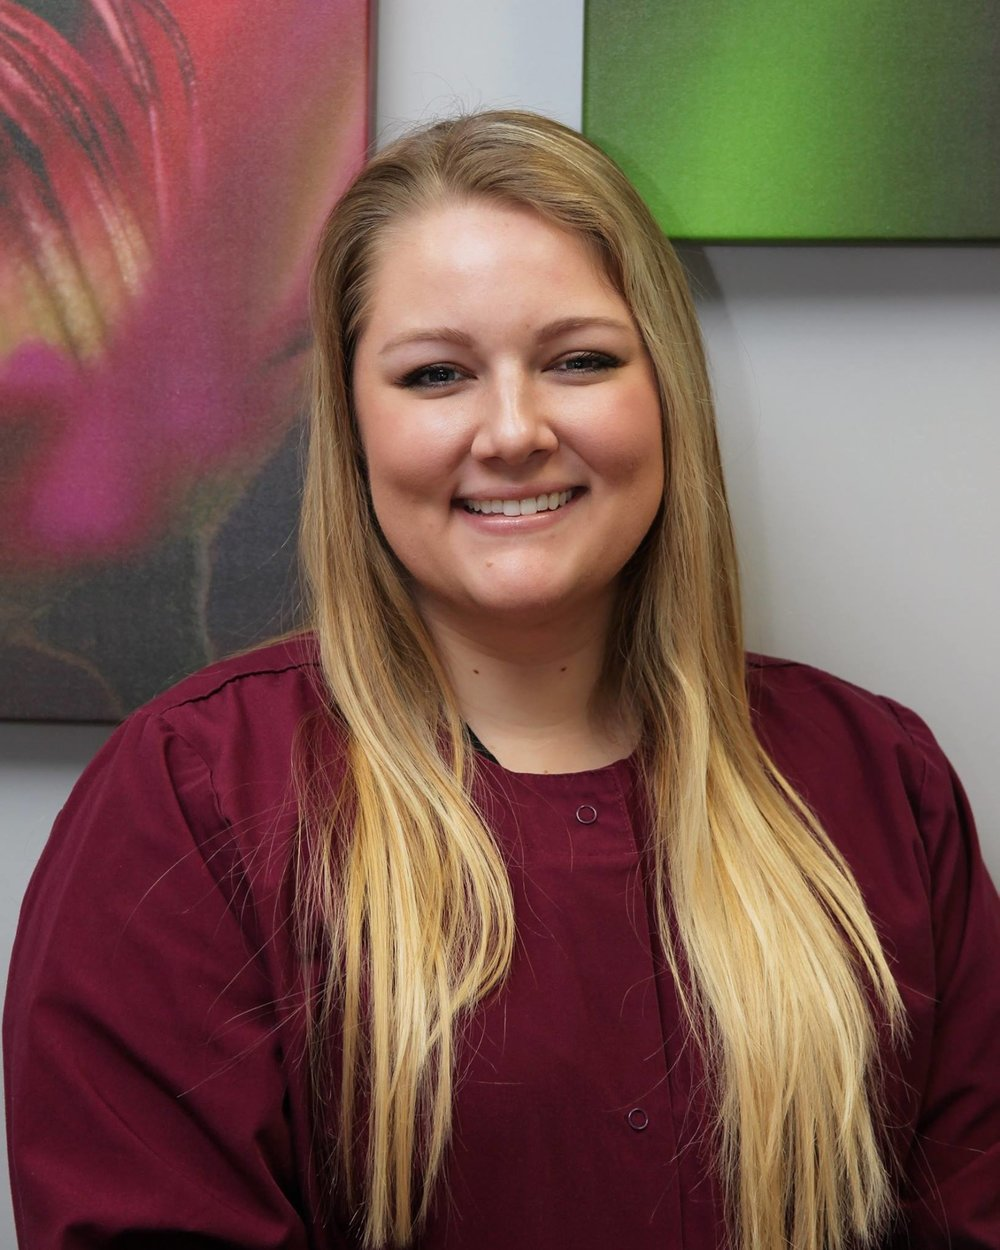 Katey dental assistant at stacy davis dds llc in waverly oh